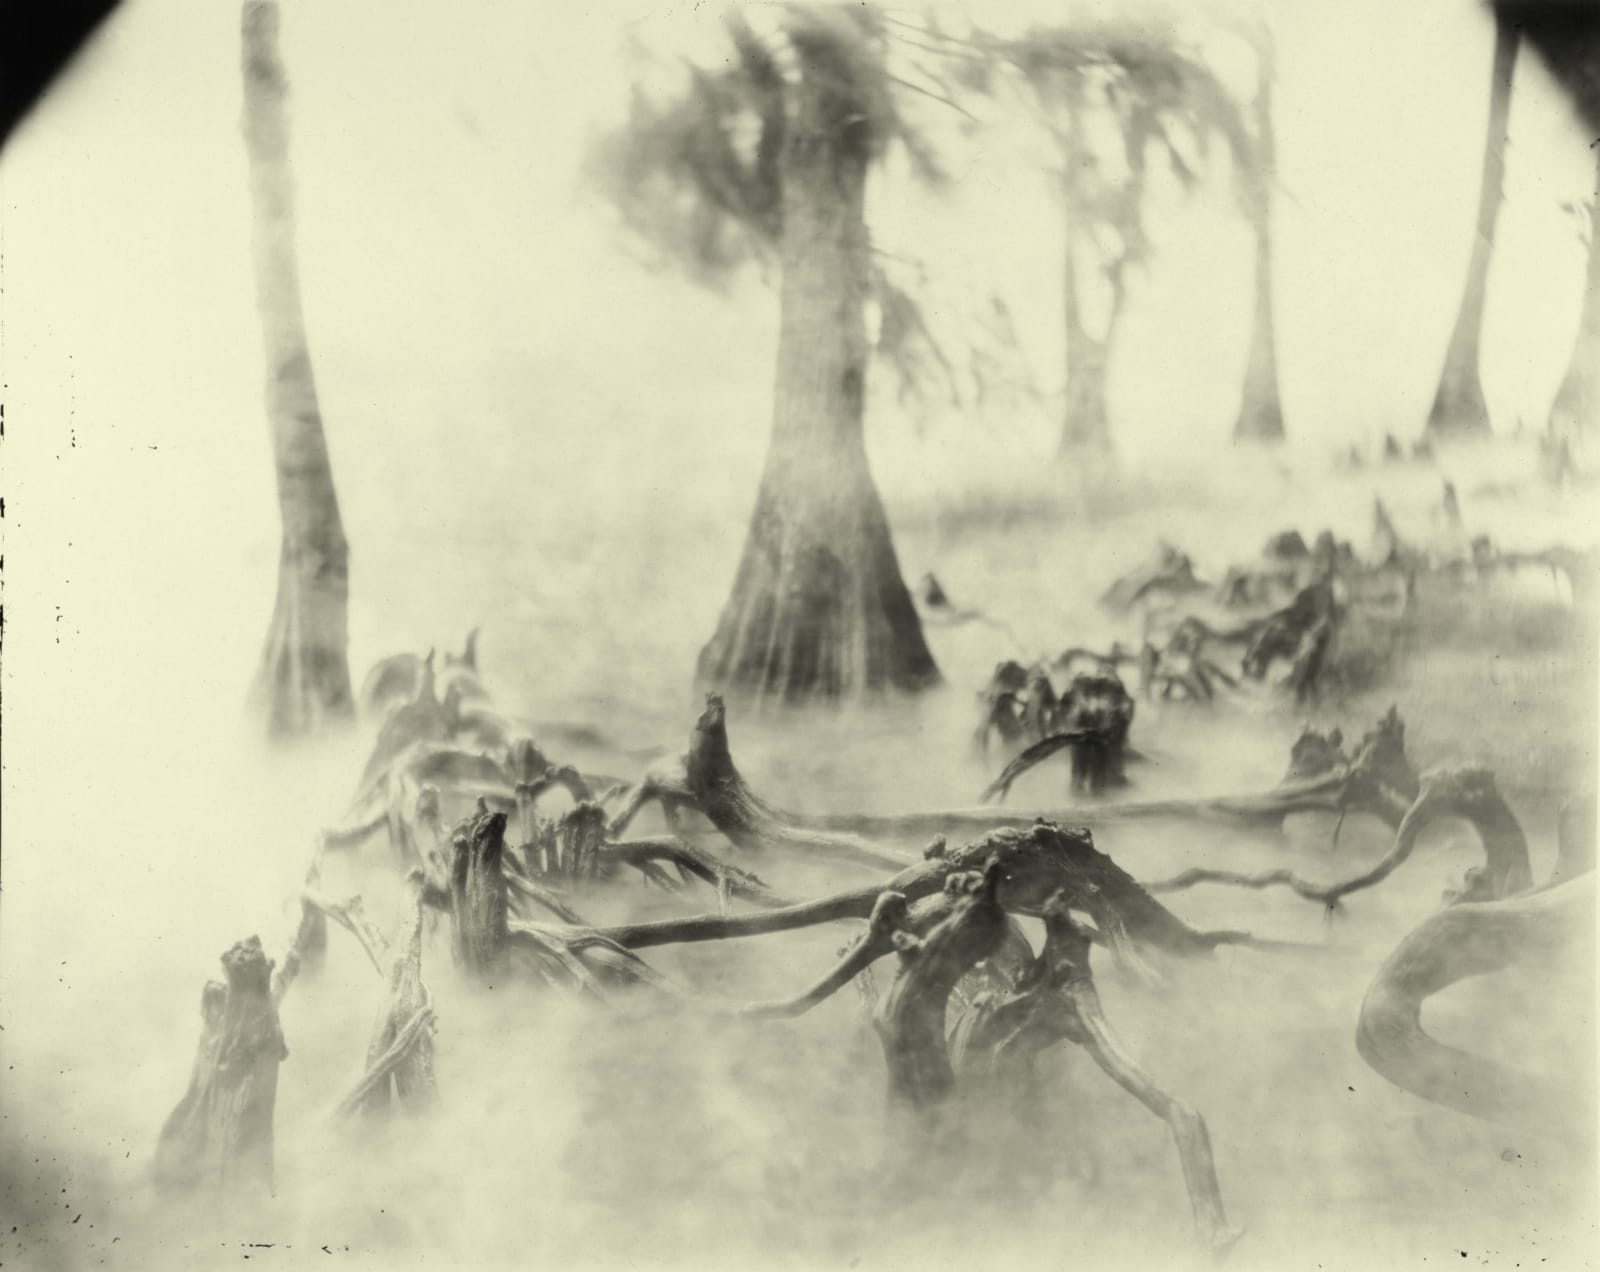 Sally Mann Deep South series, Untitled Swamp Bones, photograph of gnarled roots in swamp